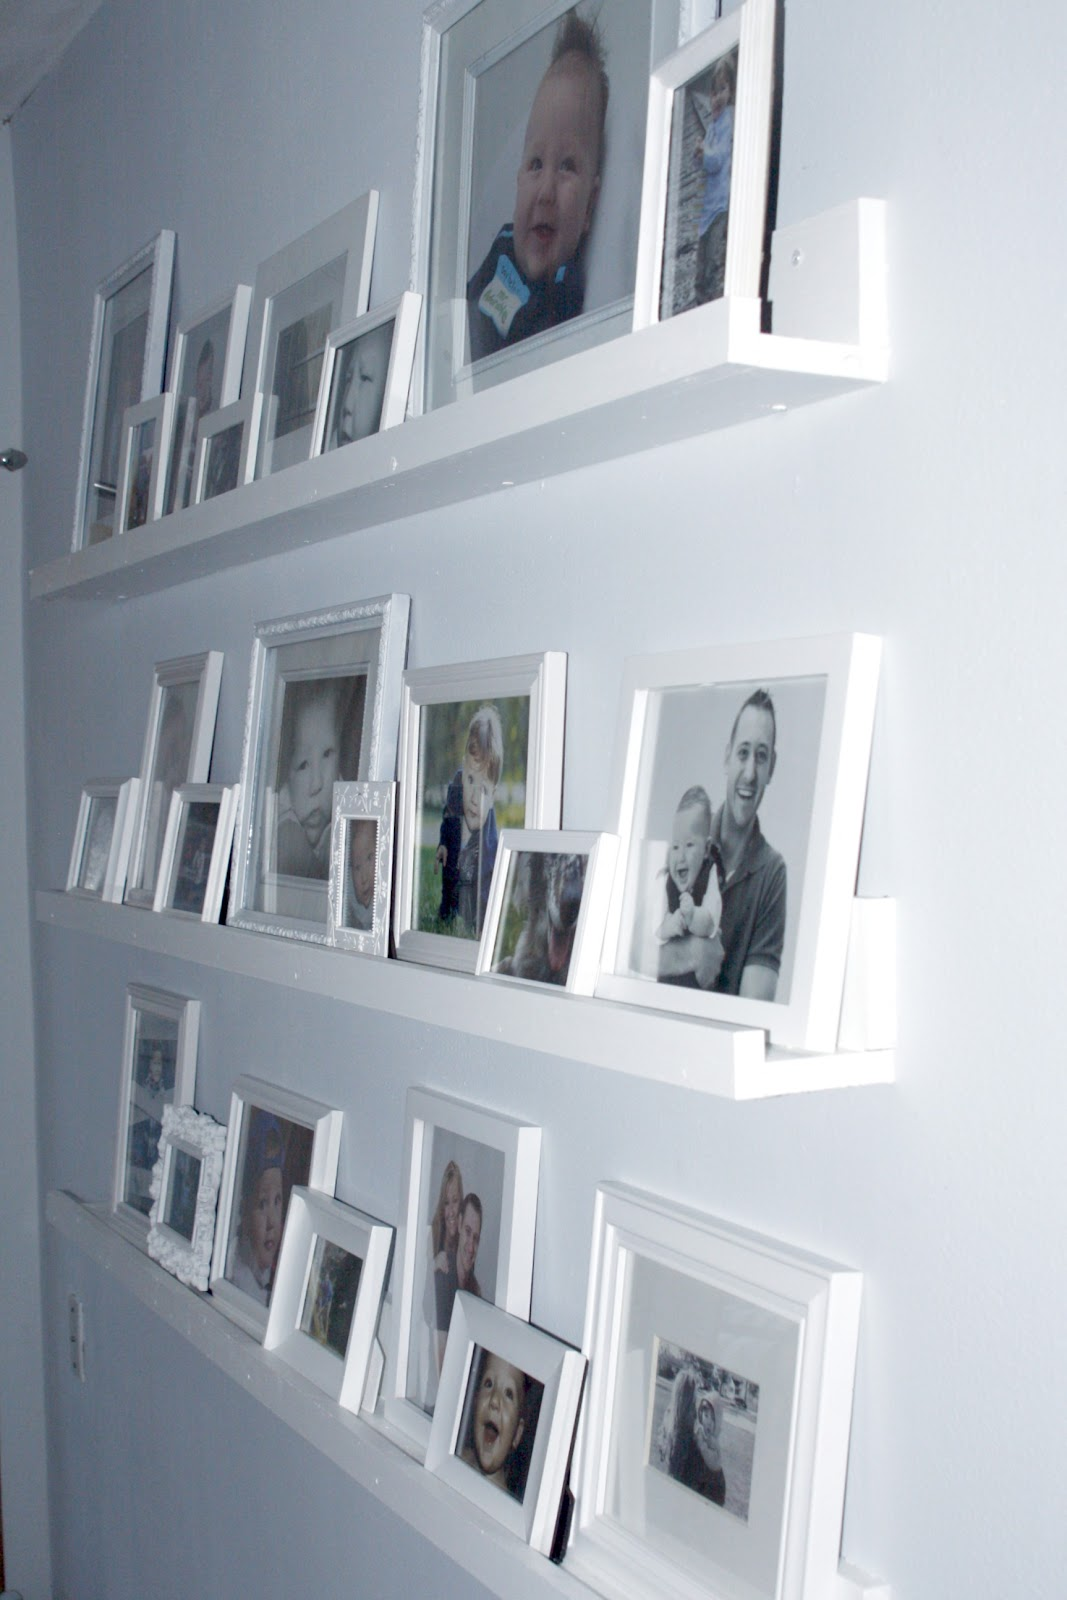 Shelves White Walls And Entry Ways: Always Chasing Life: Gallery Wall Shelves Completed